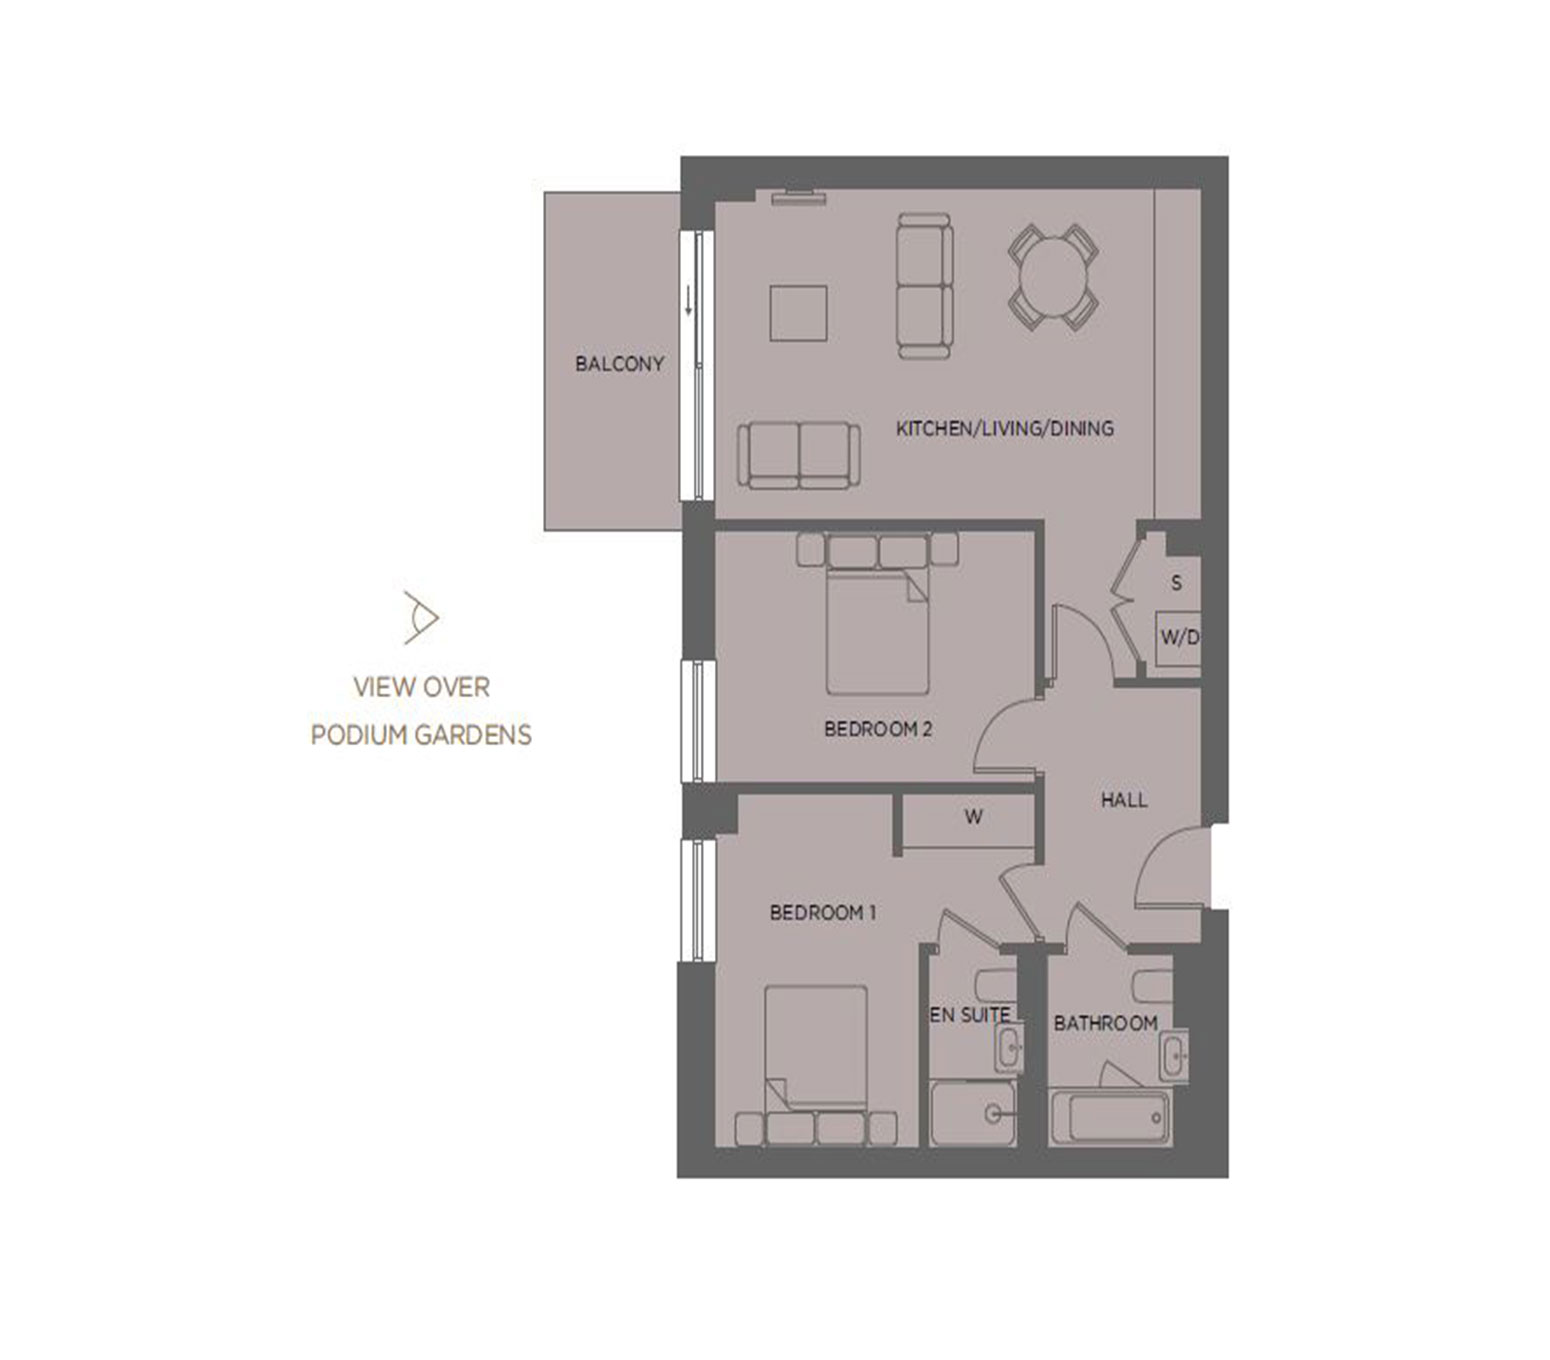 colindale gardens colindale in london  nw9 5hu by redrow